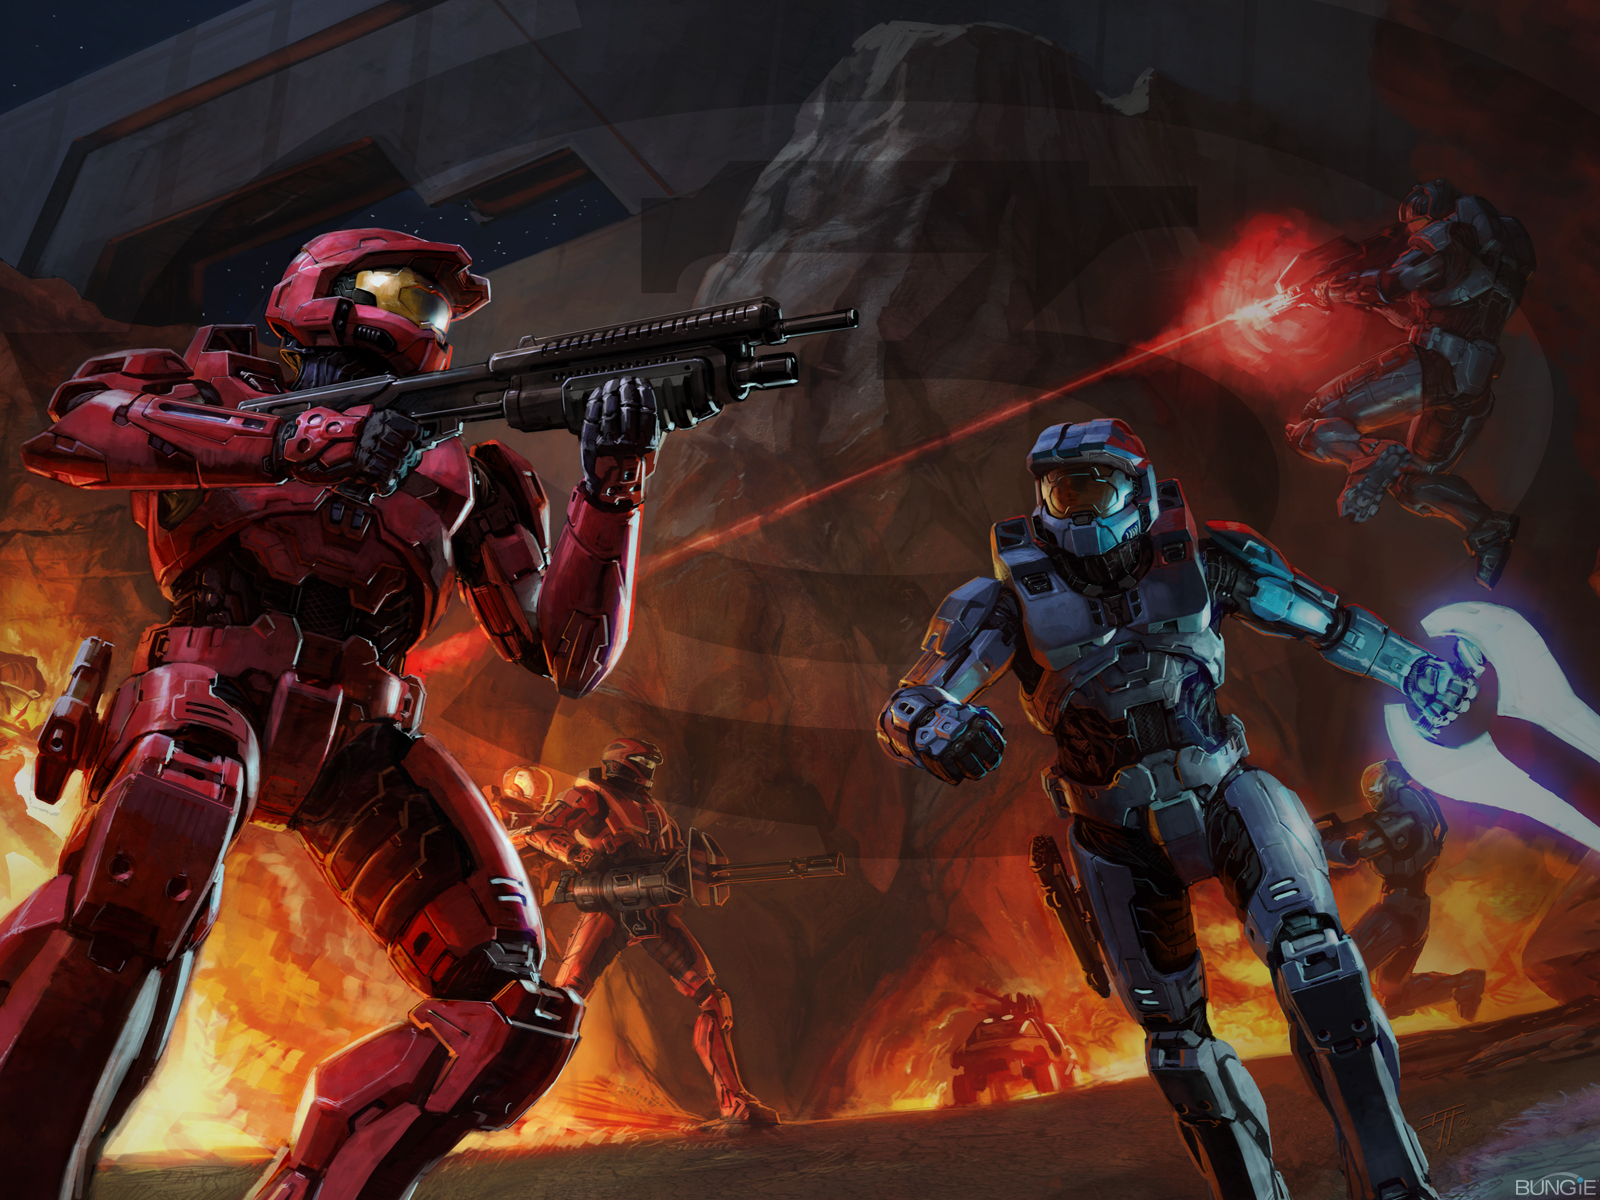 Halo Game Amazin Hd Wallpapershigh Resolution All Hd Wallpapers